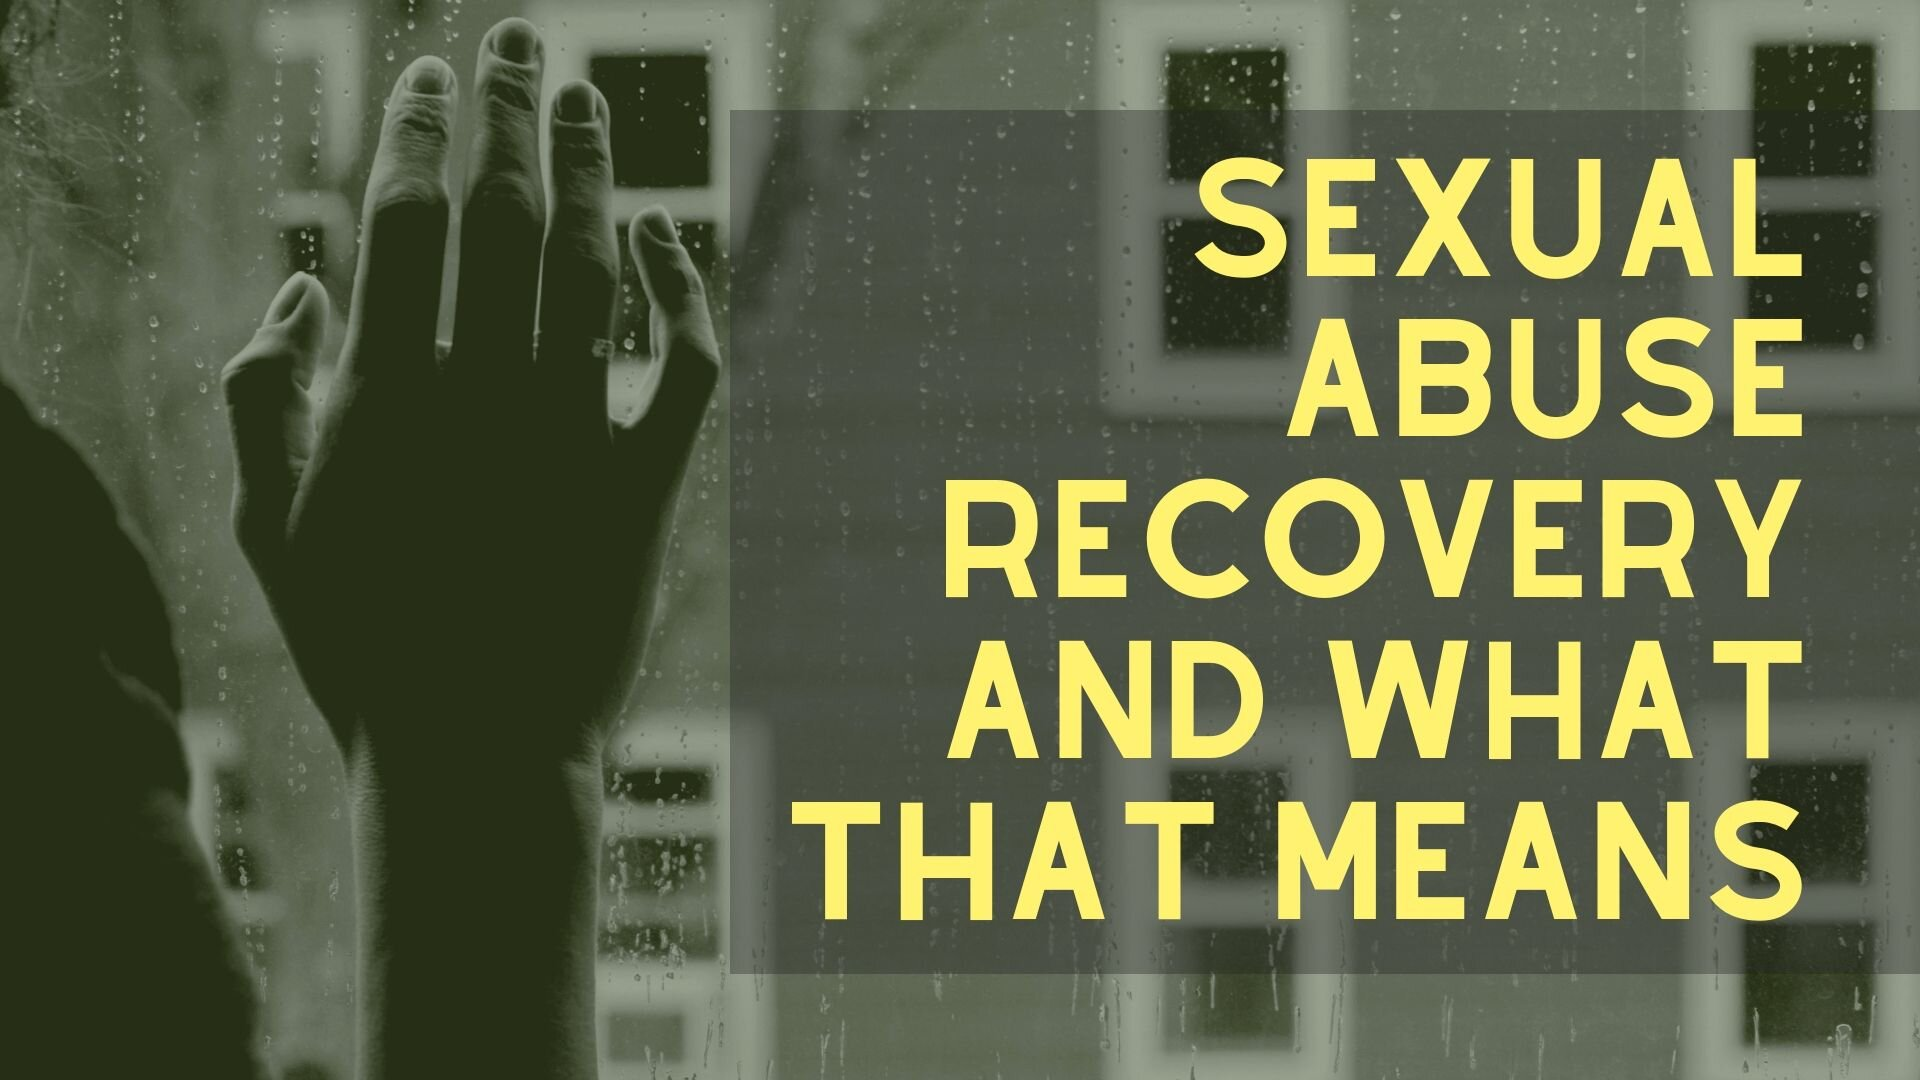 sexual abuse recovery.jpg